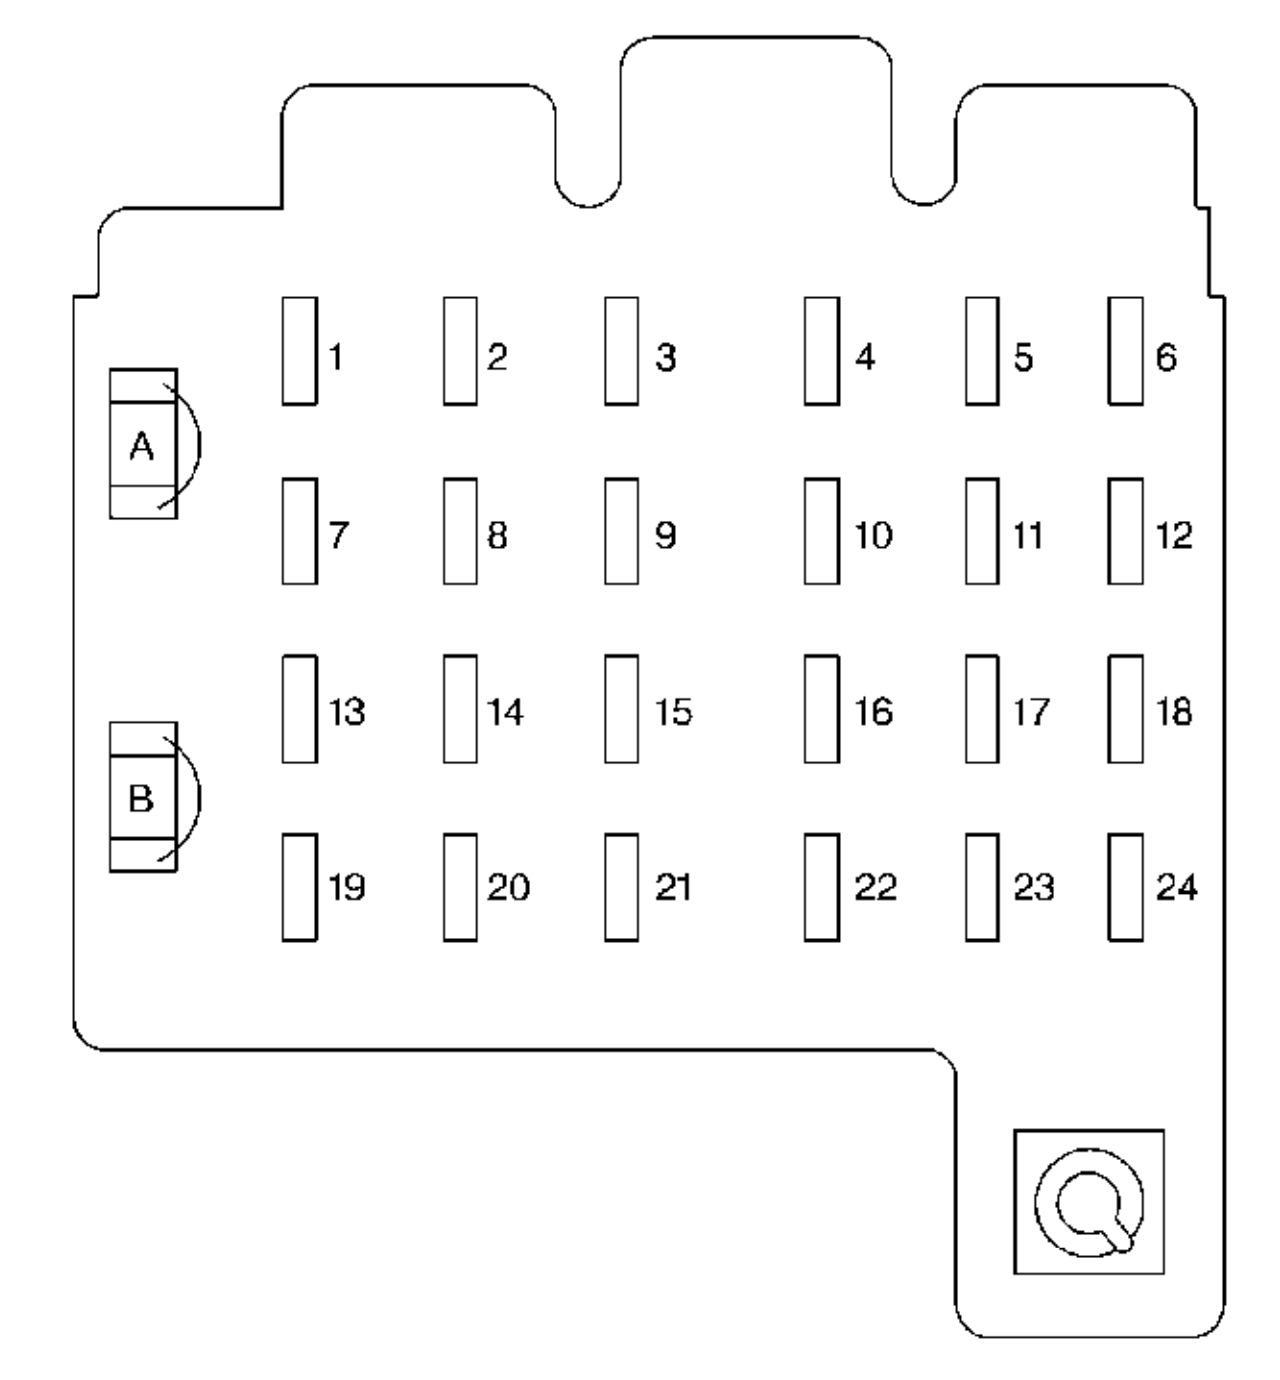 95 chevy s10 fuse box diagram detailed wiring diagrams 2006 chevy tahoe  fuse box diagram 98